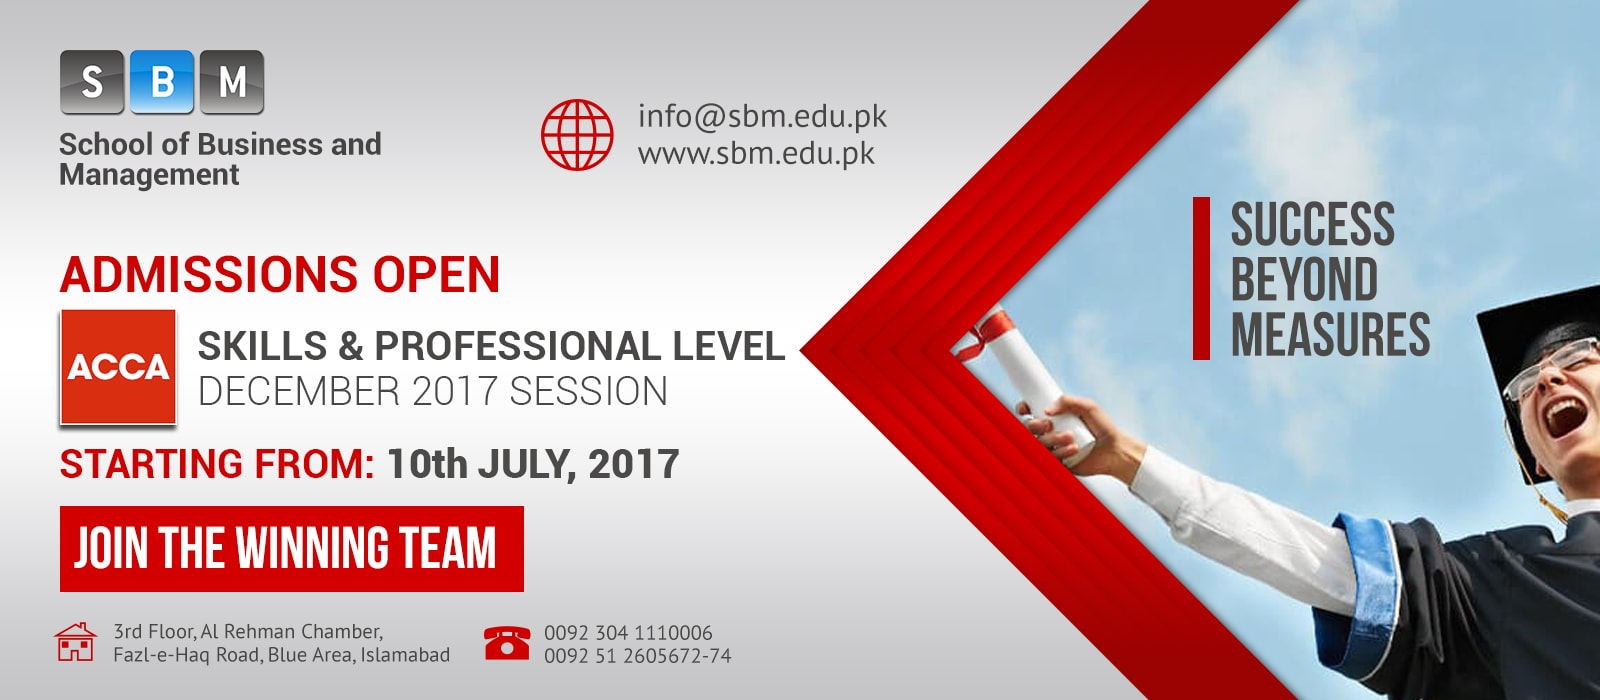 December 2017 session of skills & professional level starting from 10 July